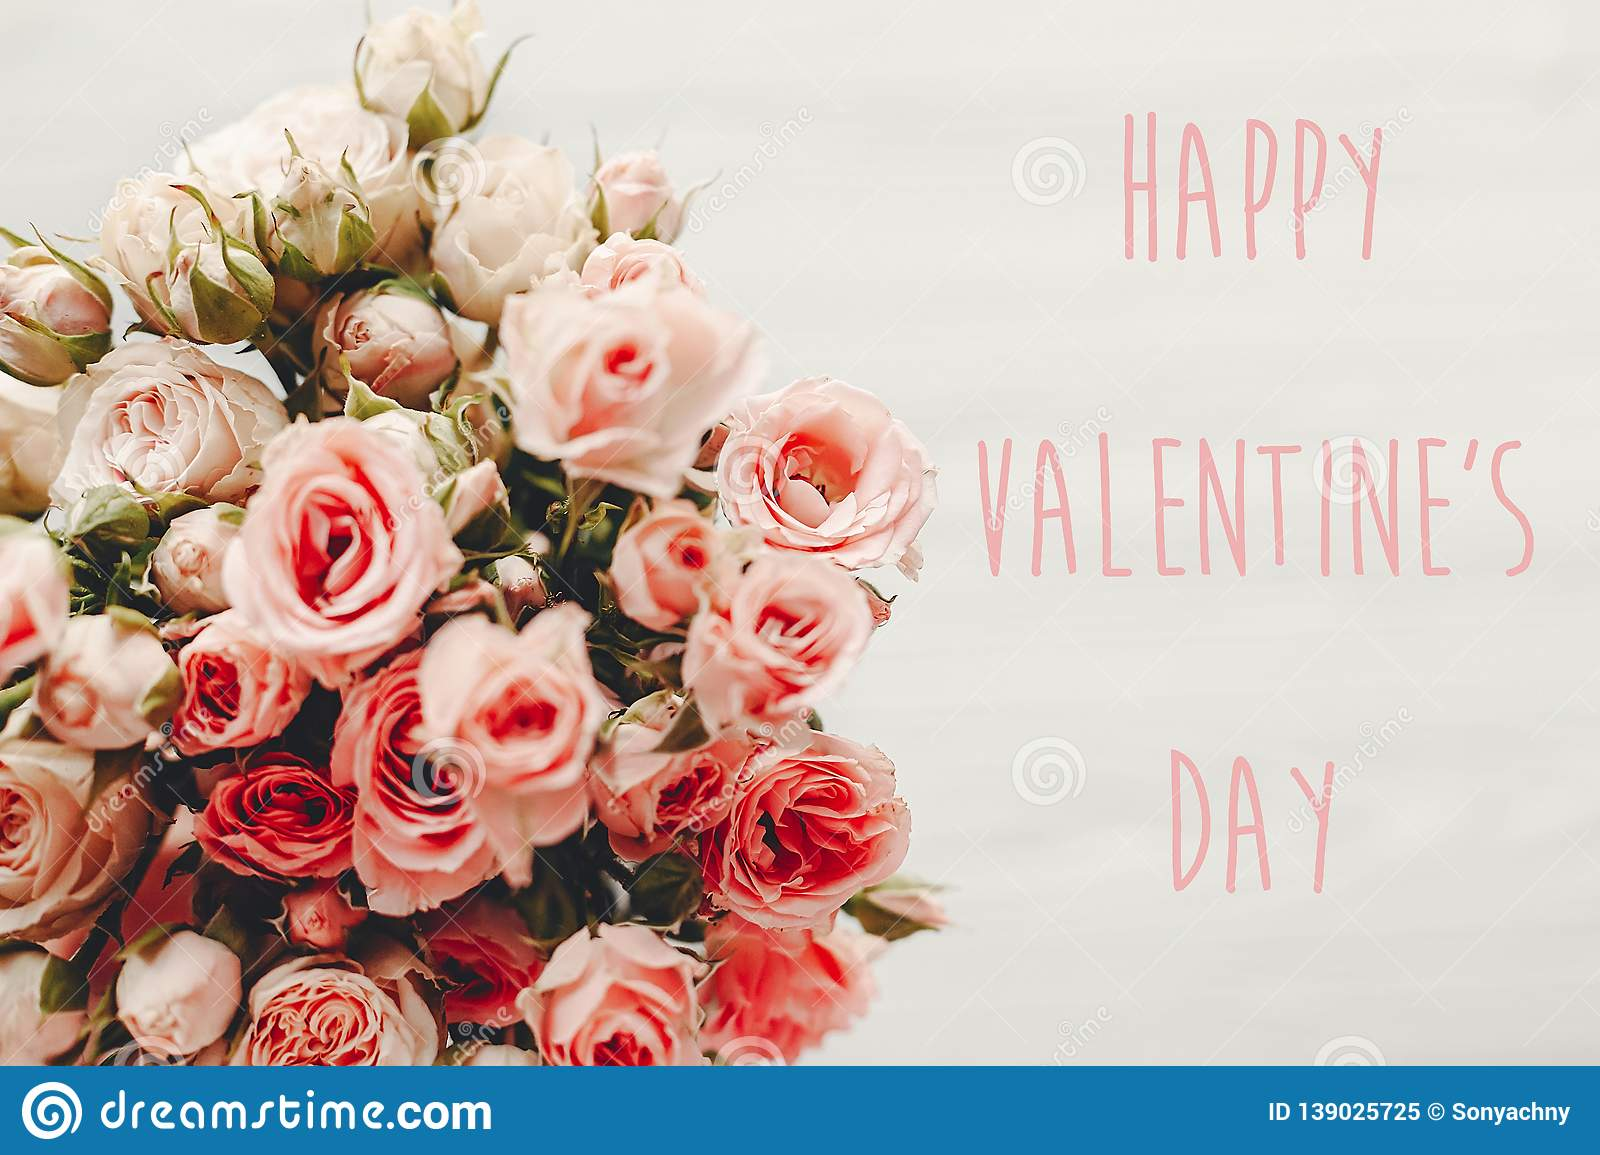 Happy Valentine`s Day text sign on pink roses bouquet on white background, top view. Valentines day floral greeting card